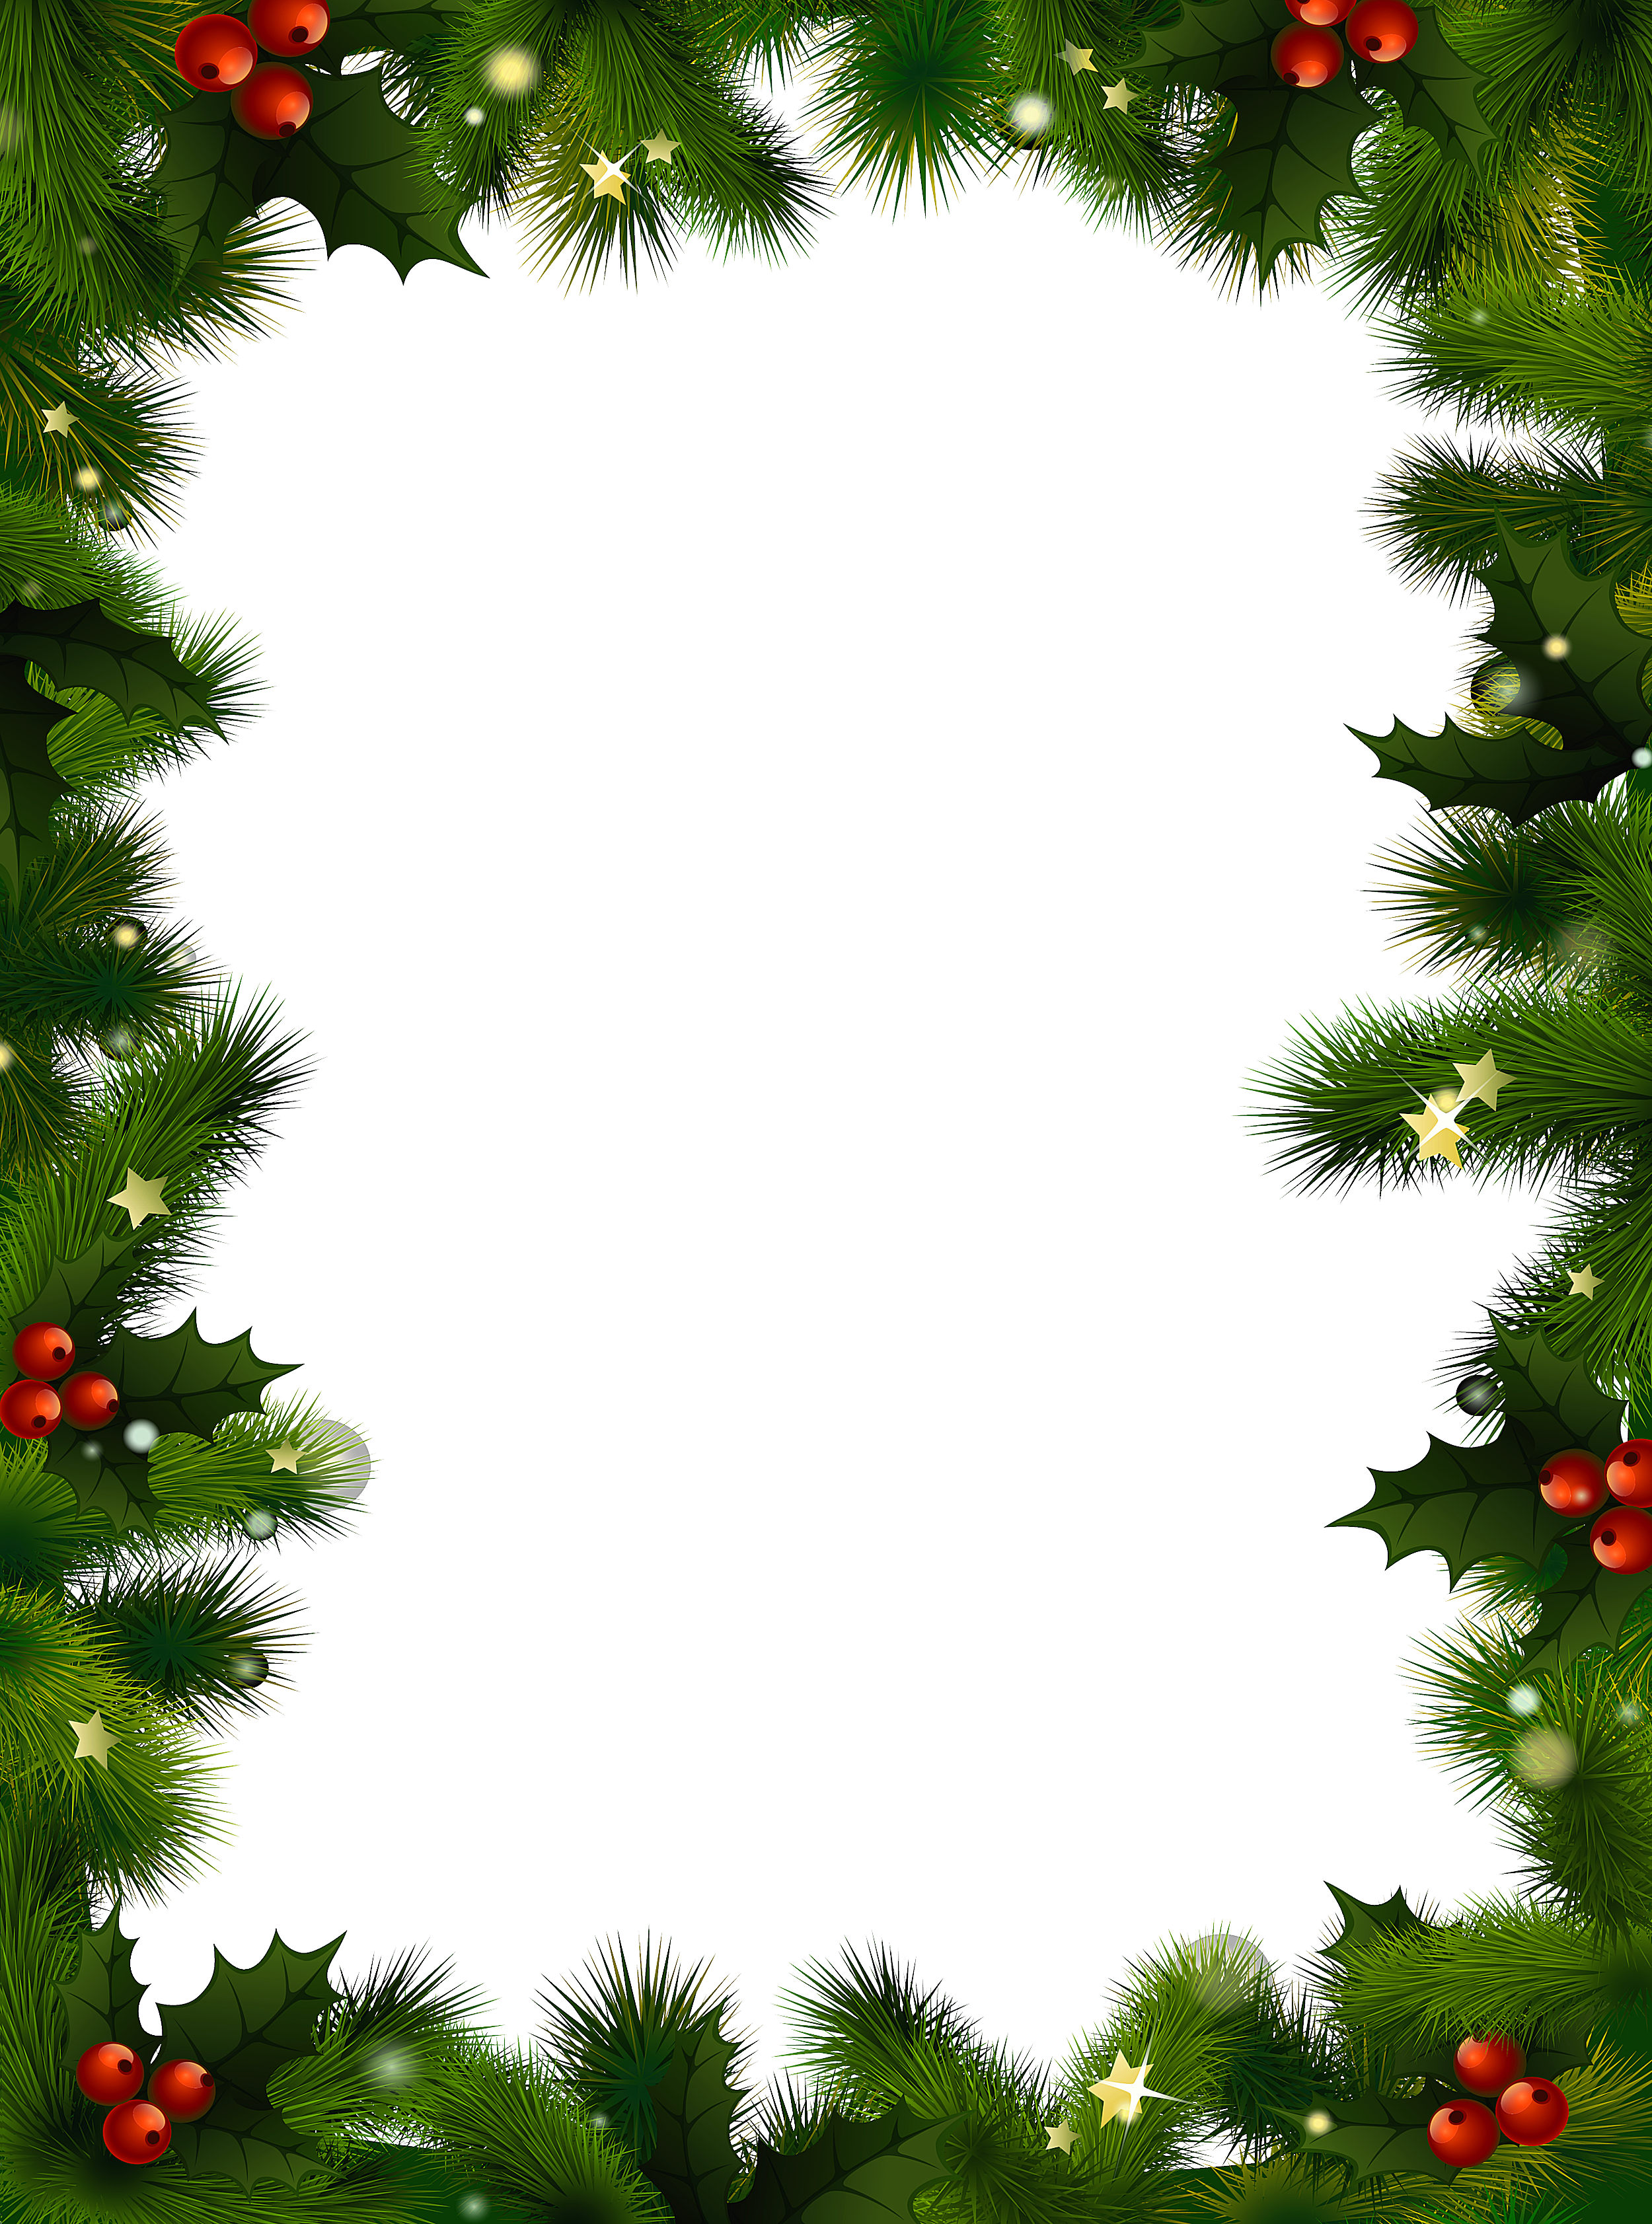 Christmas clipart templates free svg transparent stock Free Christmas Clip Art Border, Download Free Clip Art, Free Clip ... svg transparent stock